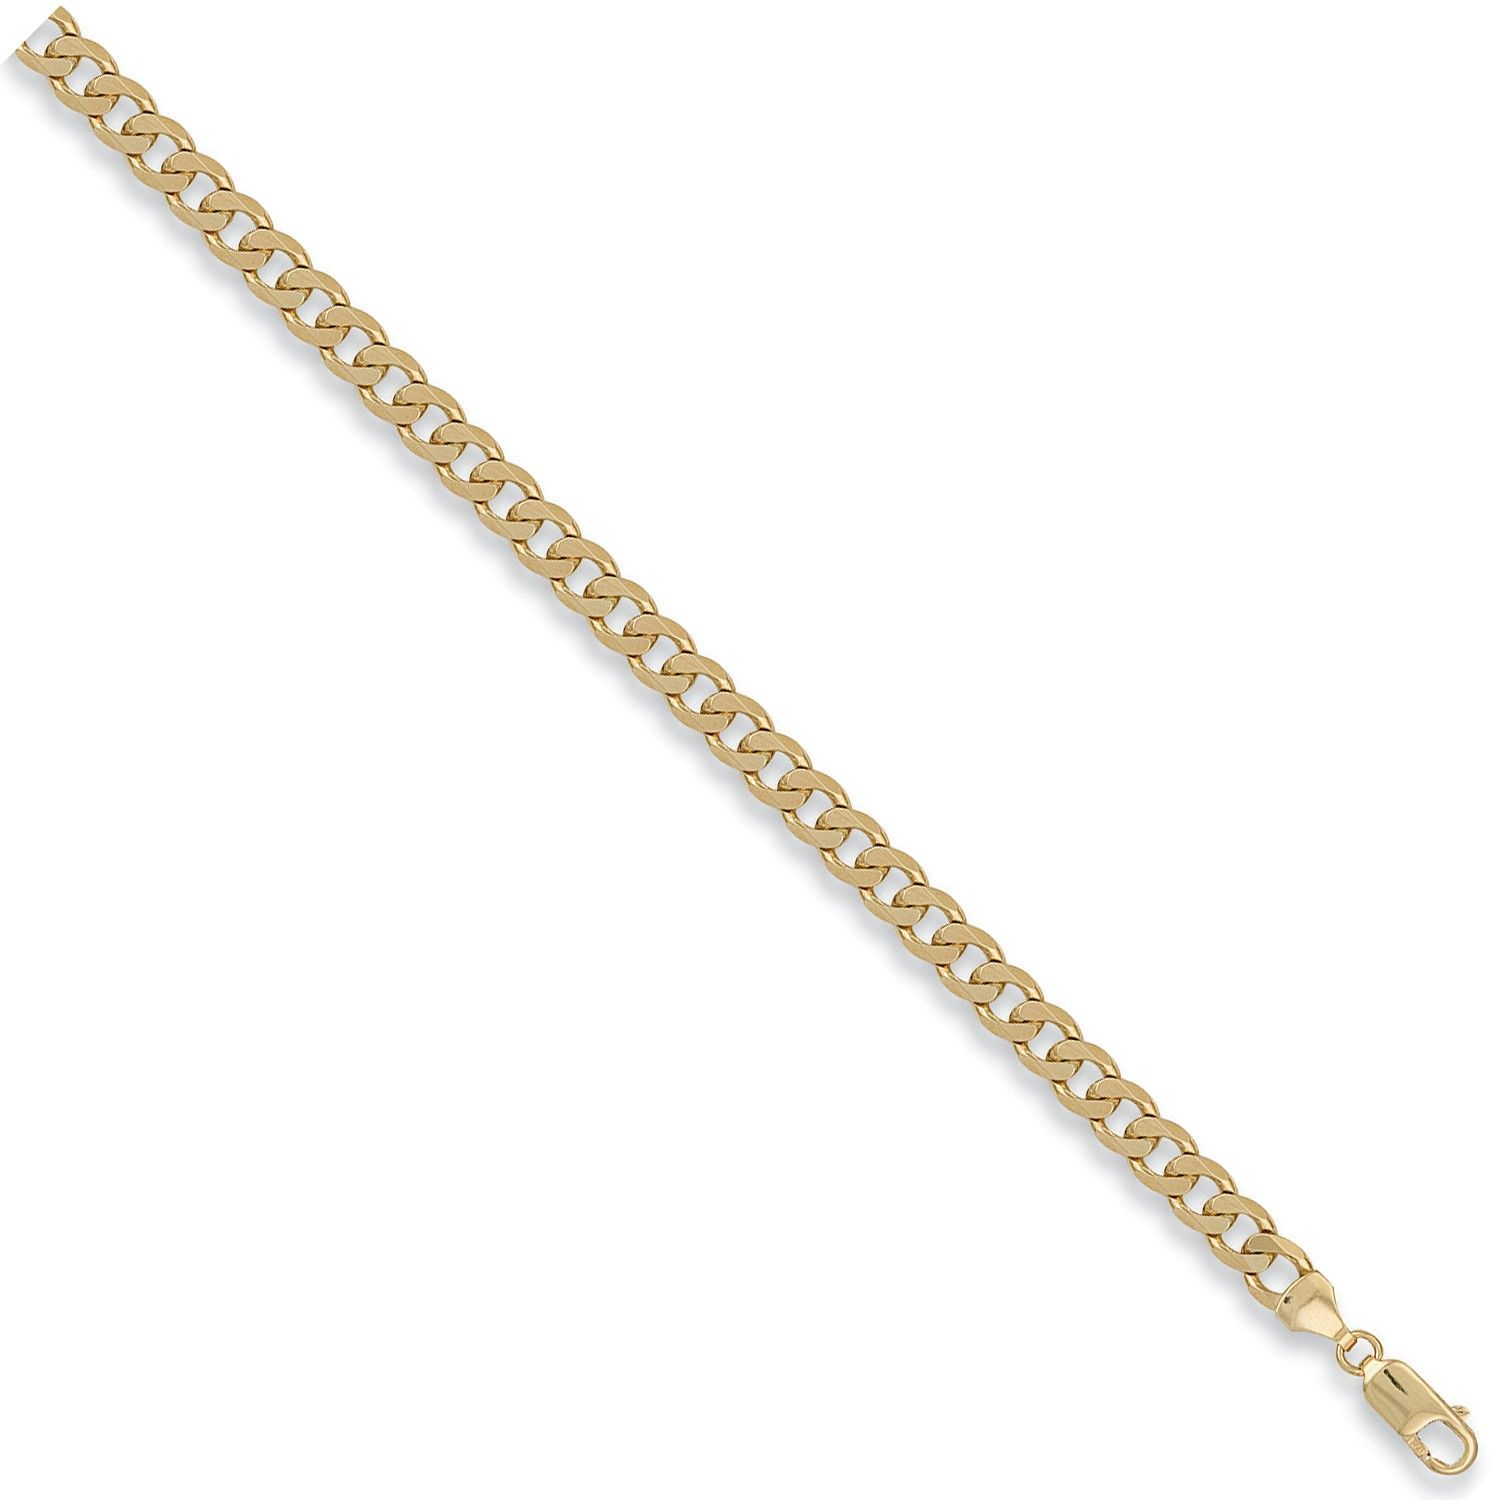 9ct Yellow Gold 6.5mm Curb Chain